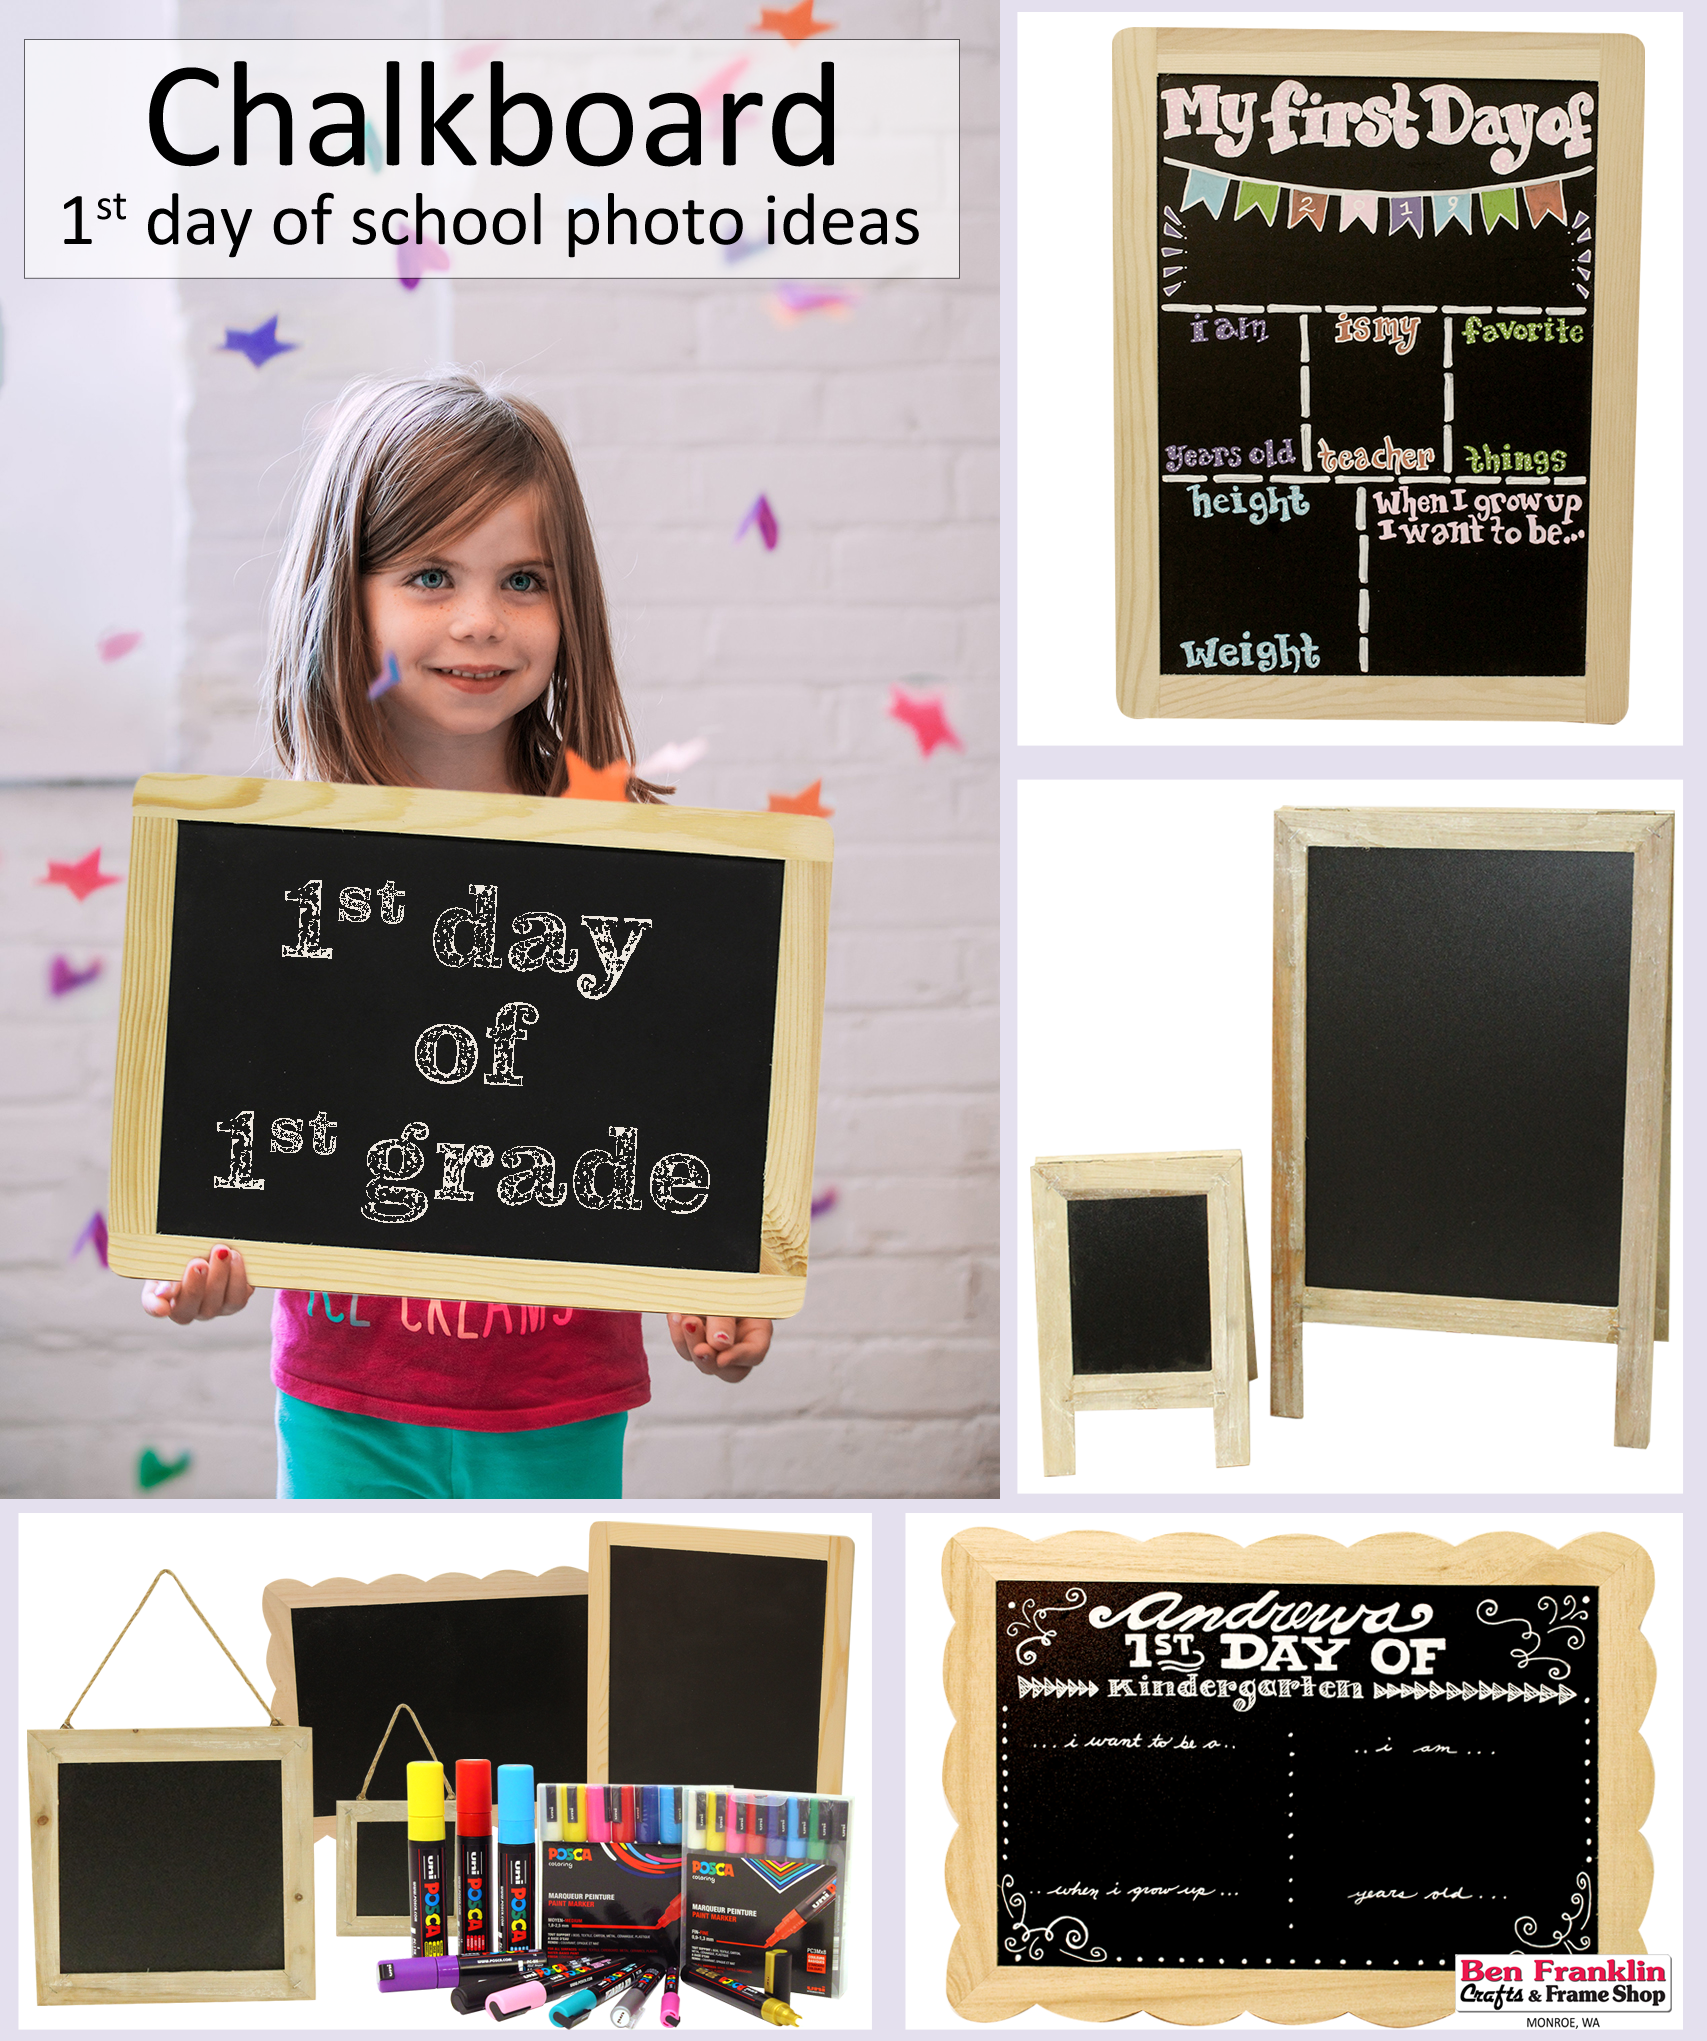 Take A Photo Of Your Child On The First Day Of School With